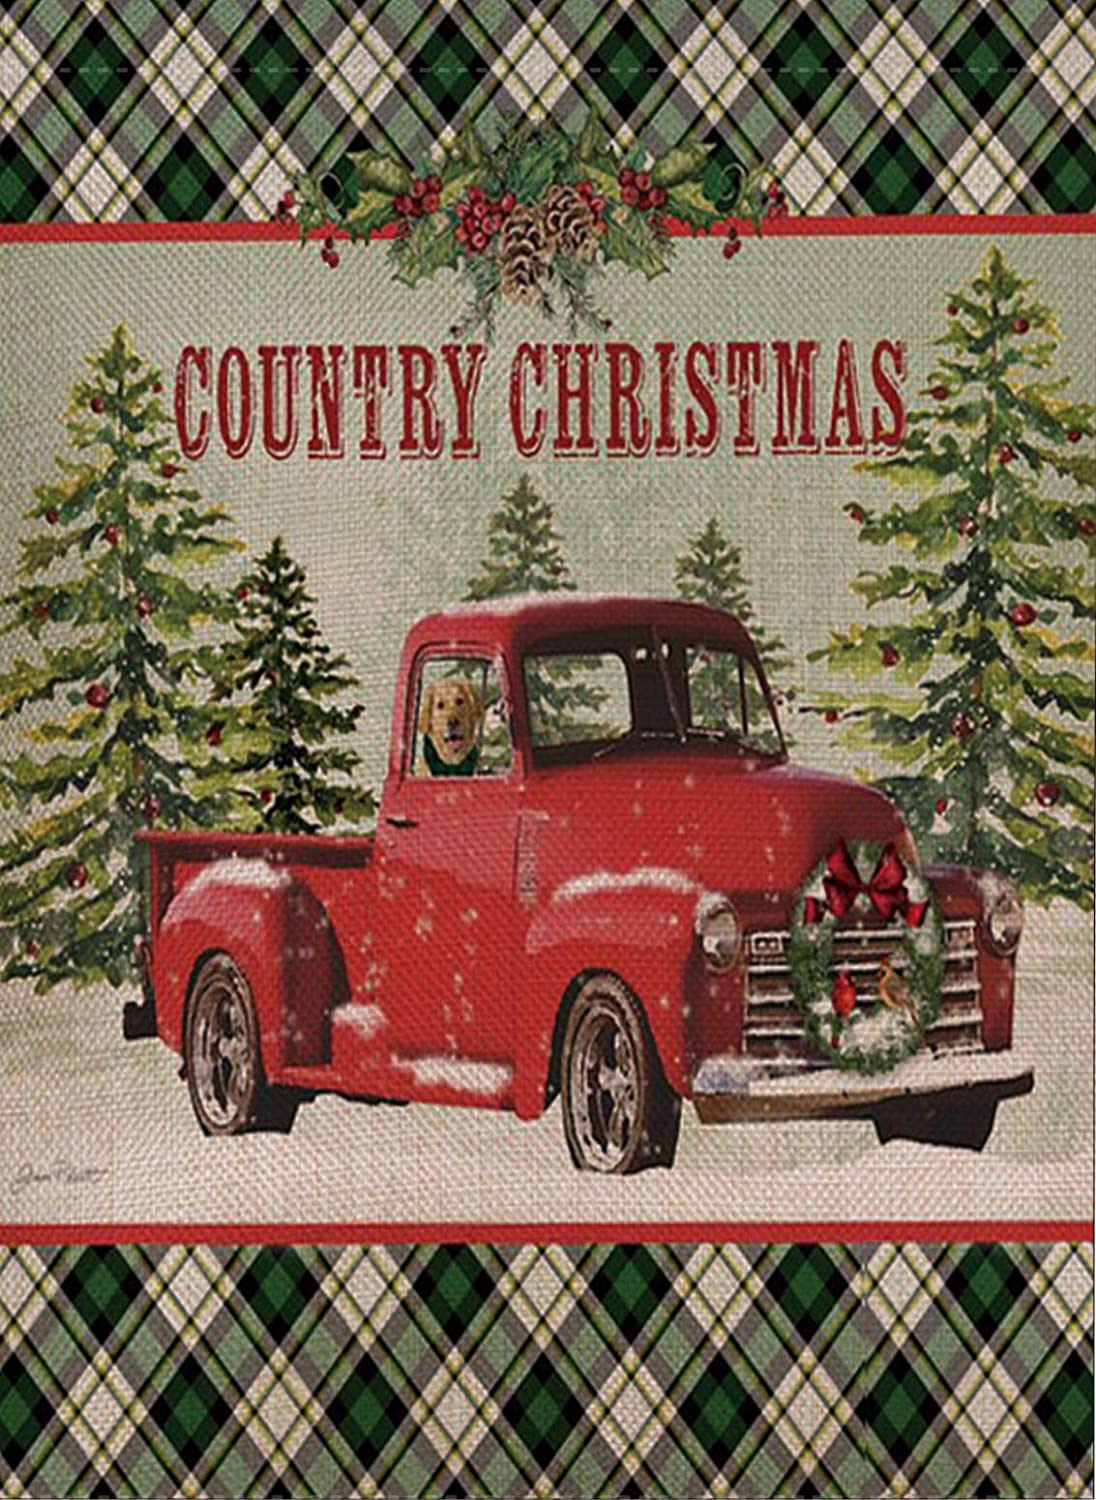 Selmad Home Decorative Country Christmas Garden Flag Red Truck Double Sided, Rustic Xmas Quote House Yard Flag Pickup, Winter Holiday Farmhouse Garden Decorations, Plaid Seasonal Outdoor Flag 12 x 18